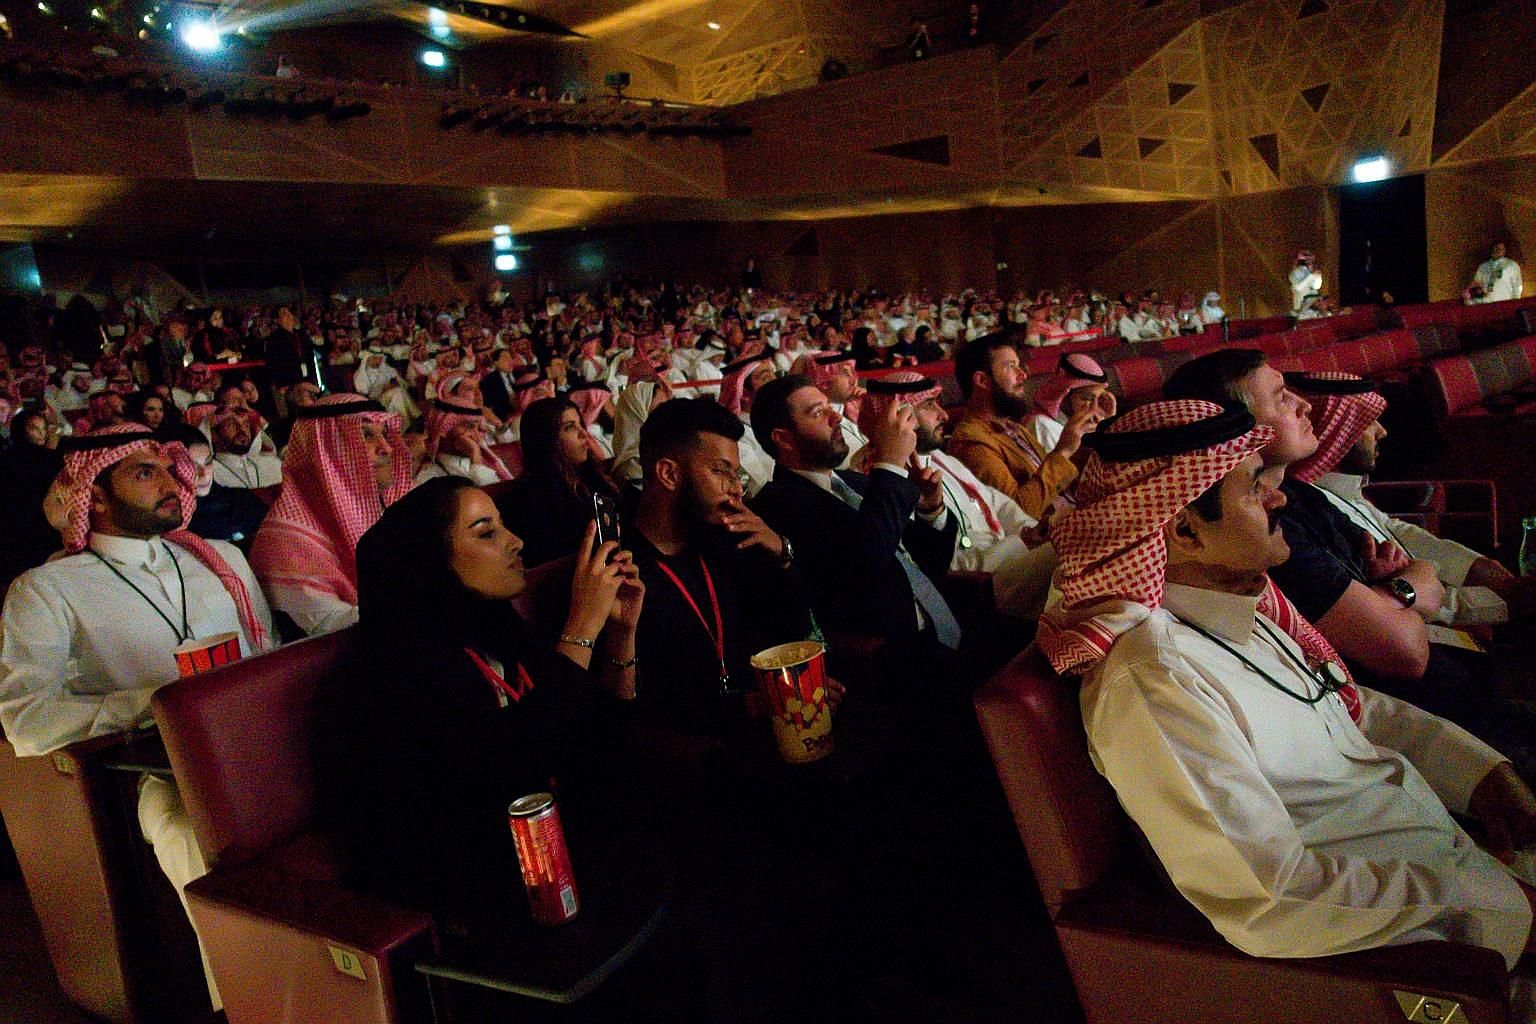 Saudis enjoying a VIP screening of Black Panther in Riyadh on Wednesday. AMC Entertainment, which opened the theatre, plans to open at least 40 cinemas in 15 Saudi cities in the next three to five years.